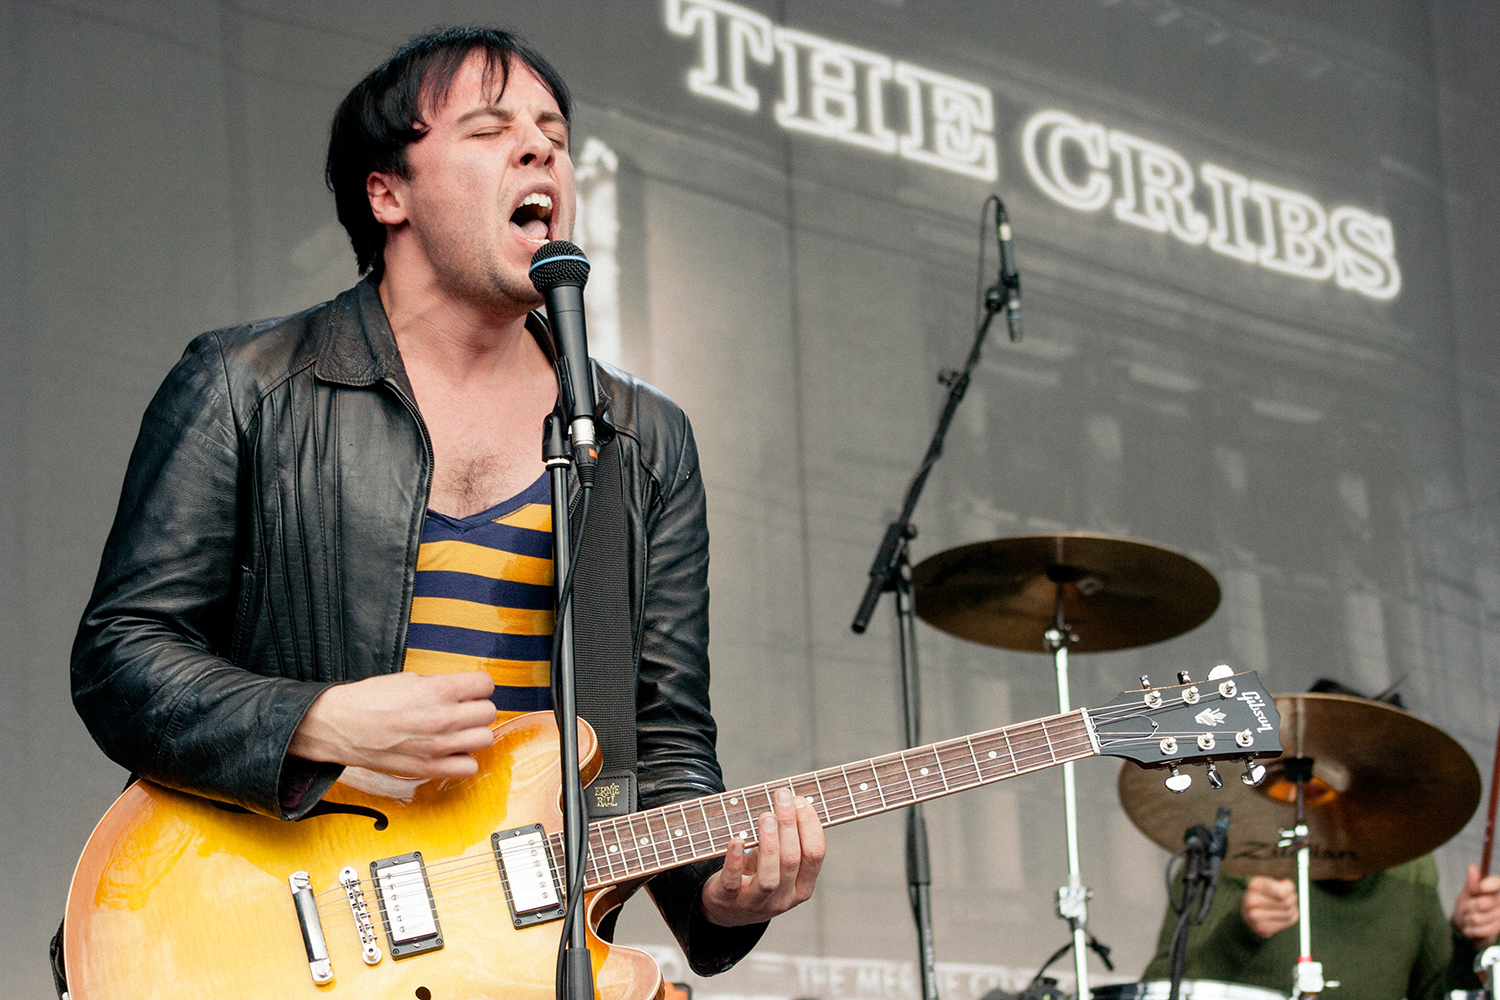 The Cribs at 02 Festival Harewood House